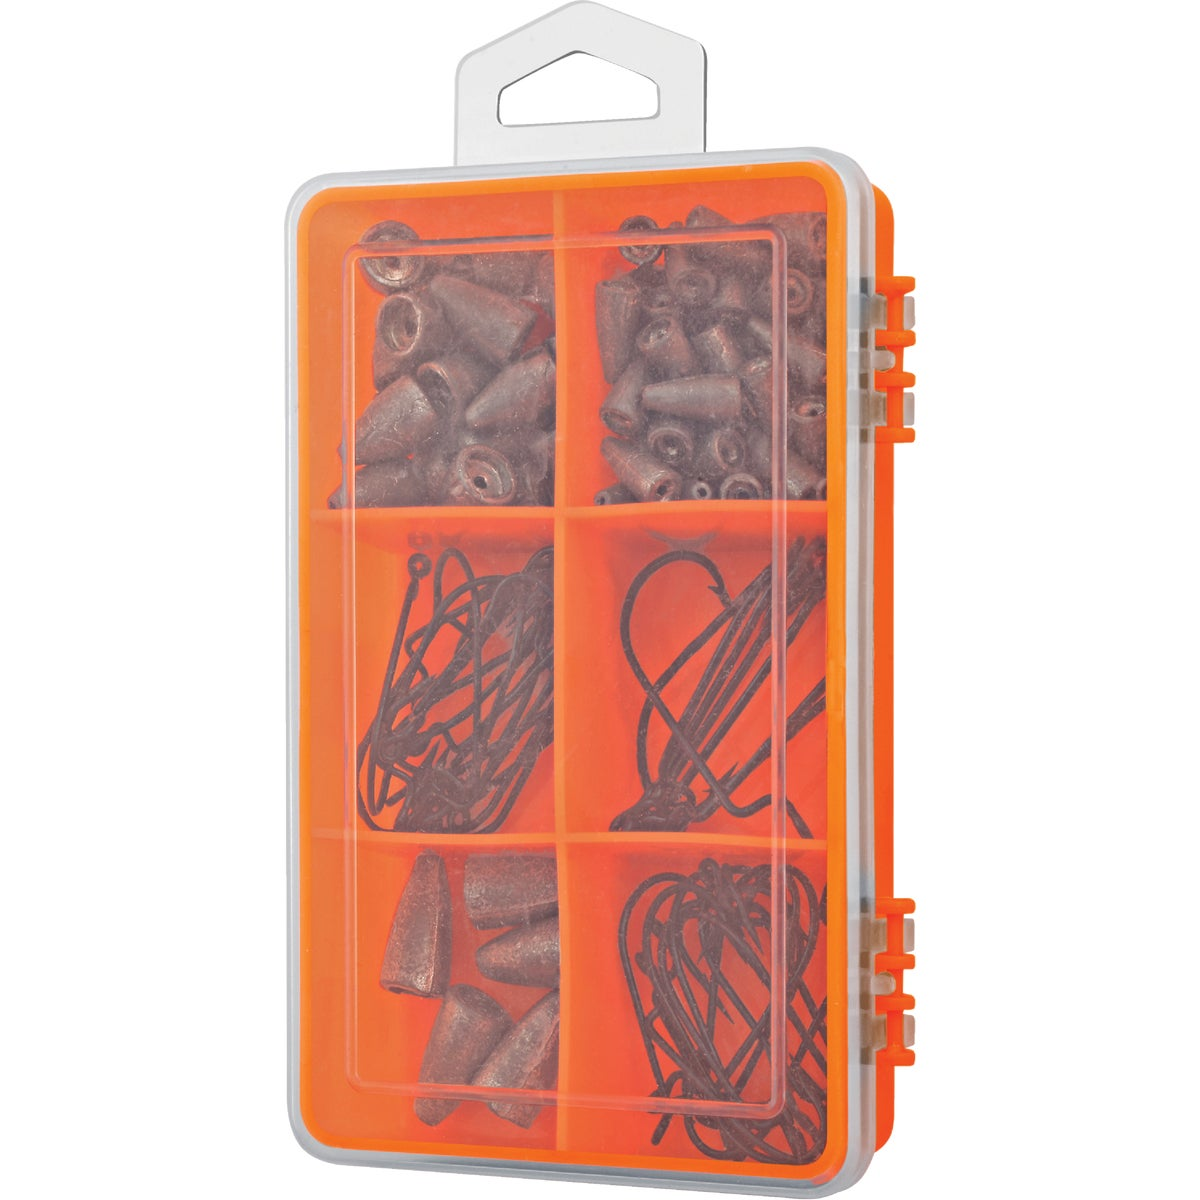 105PC WORM HOOK & SINKER